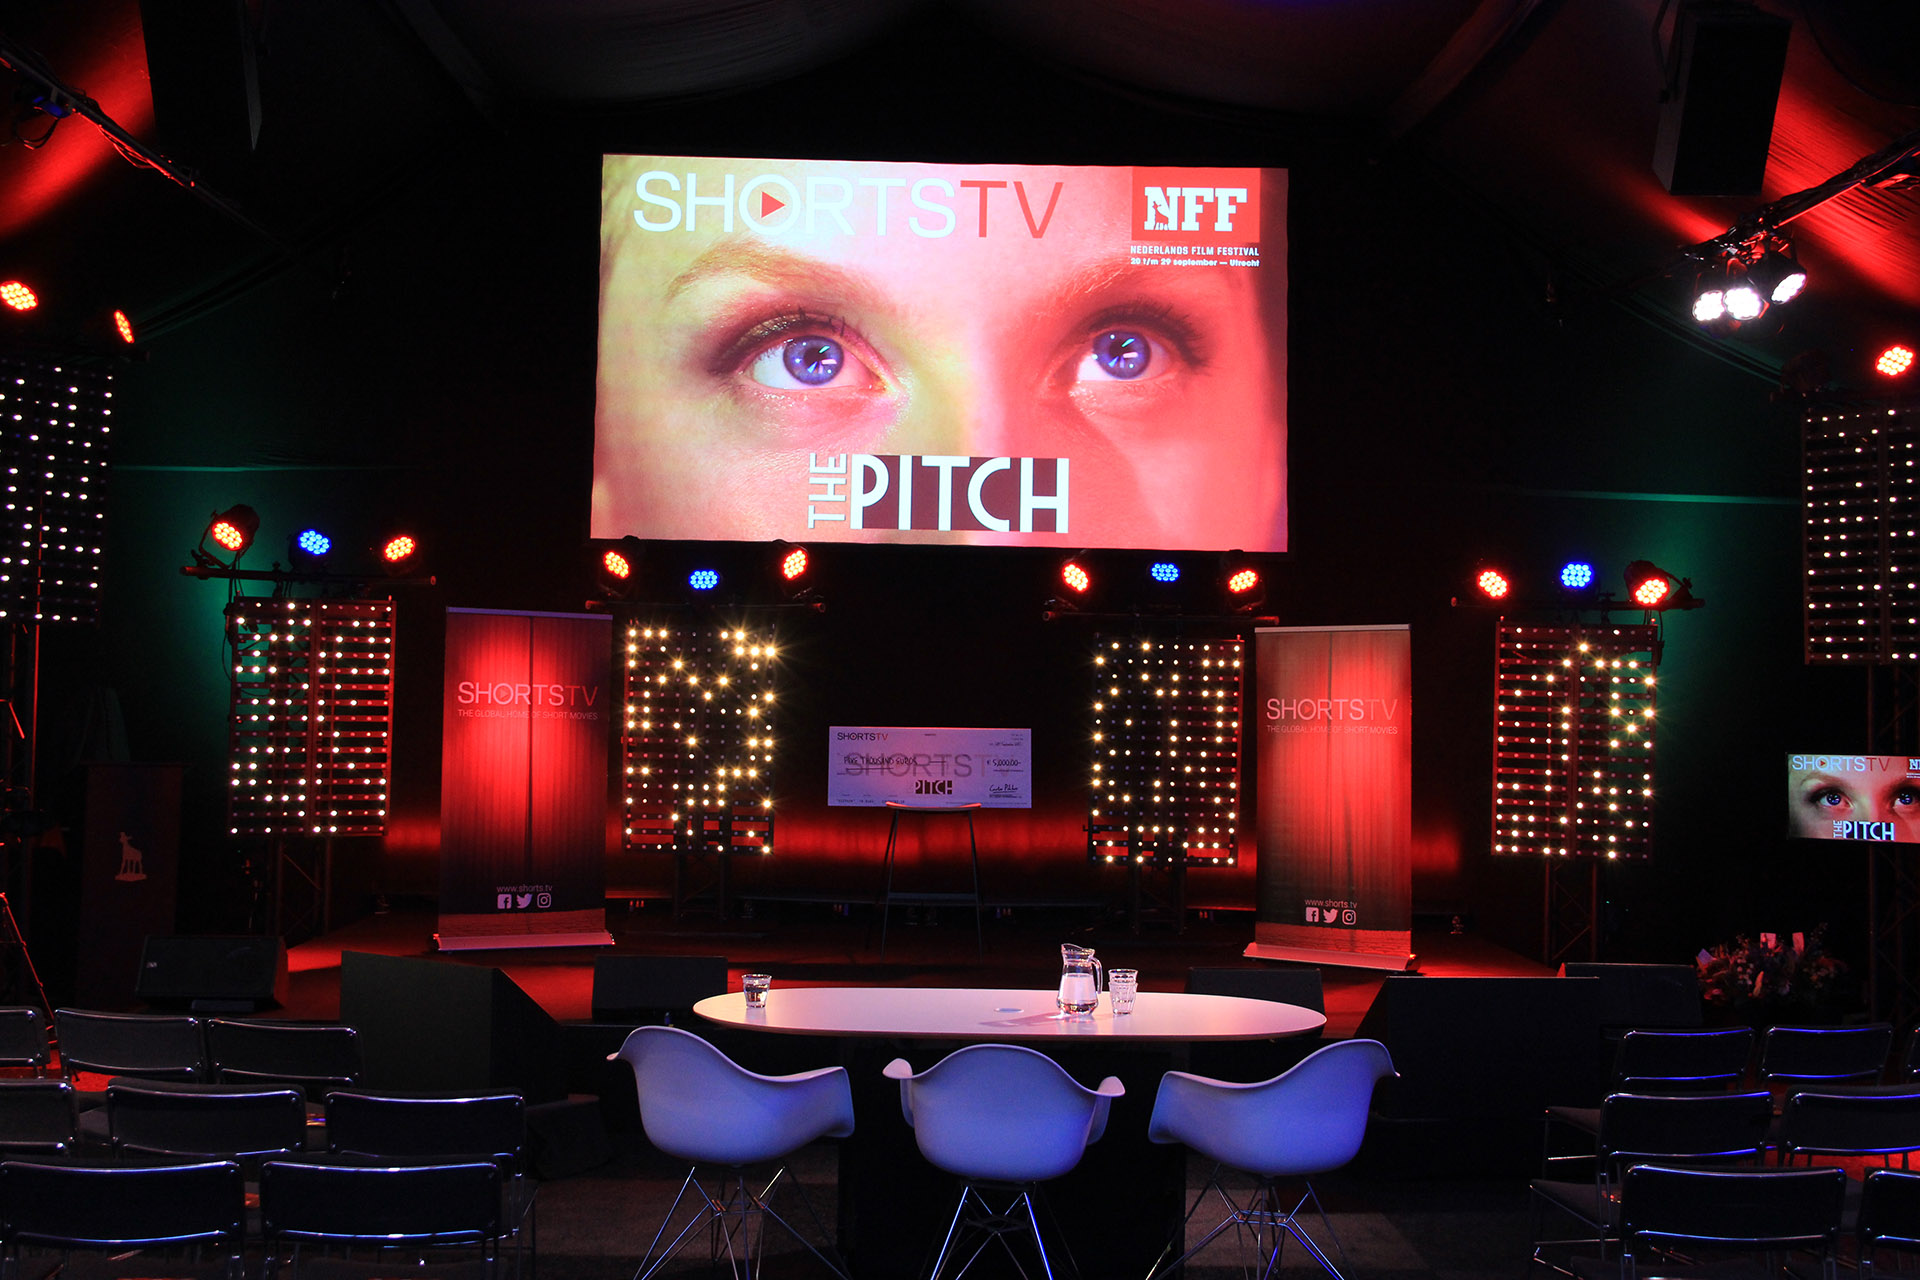 The Pitch stage at the Netherlands Film Festival